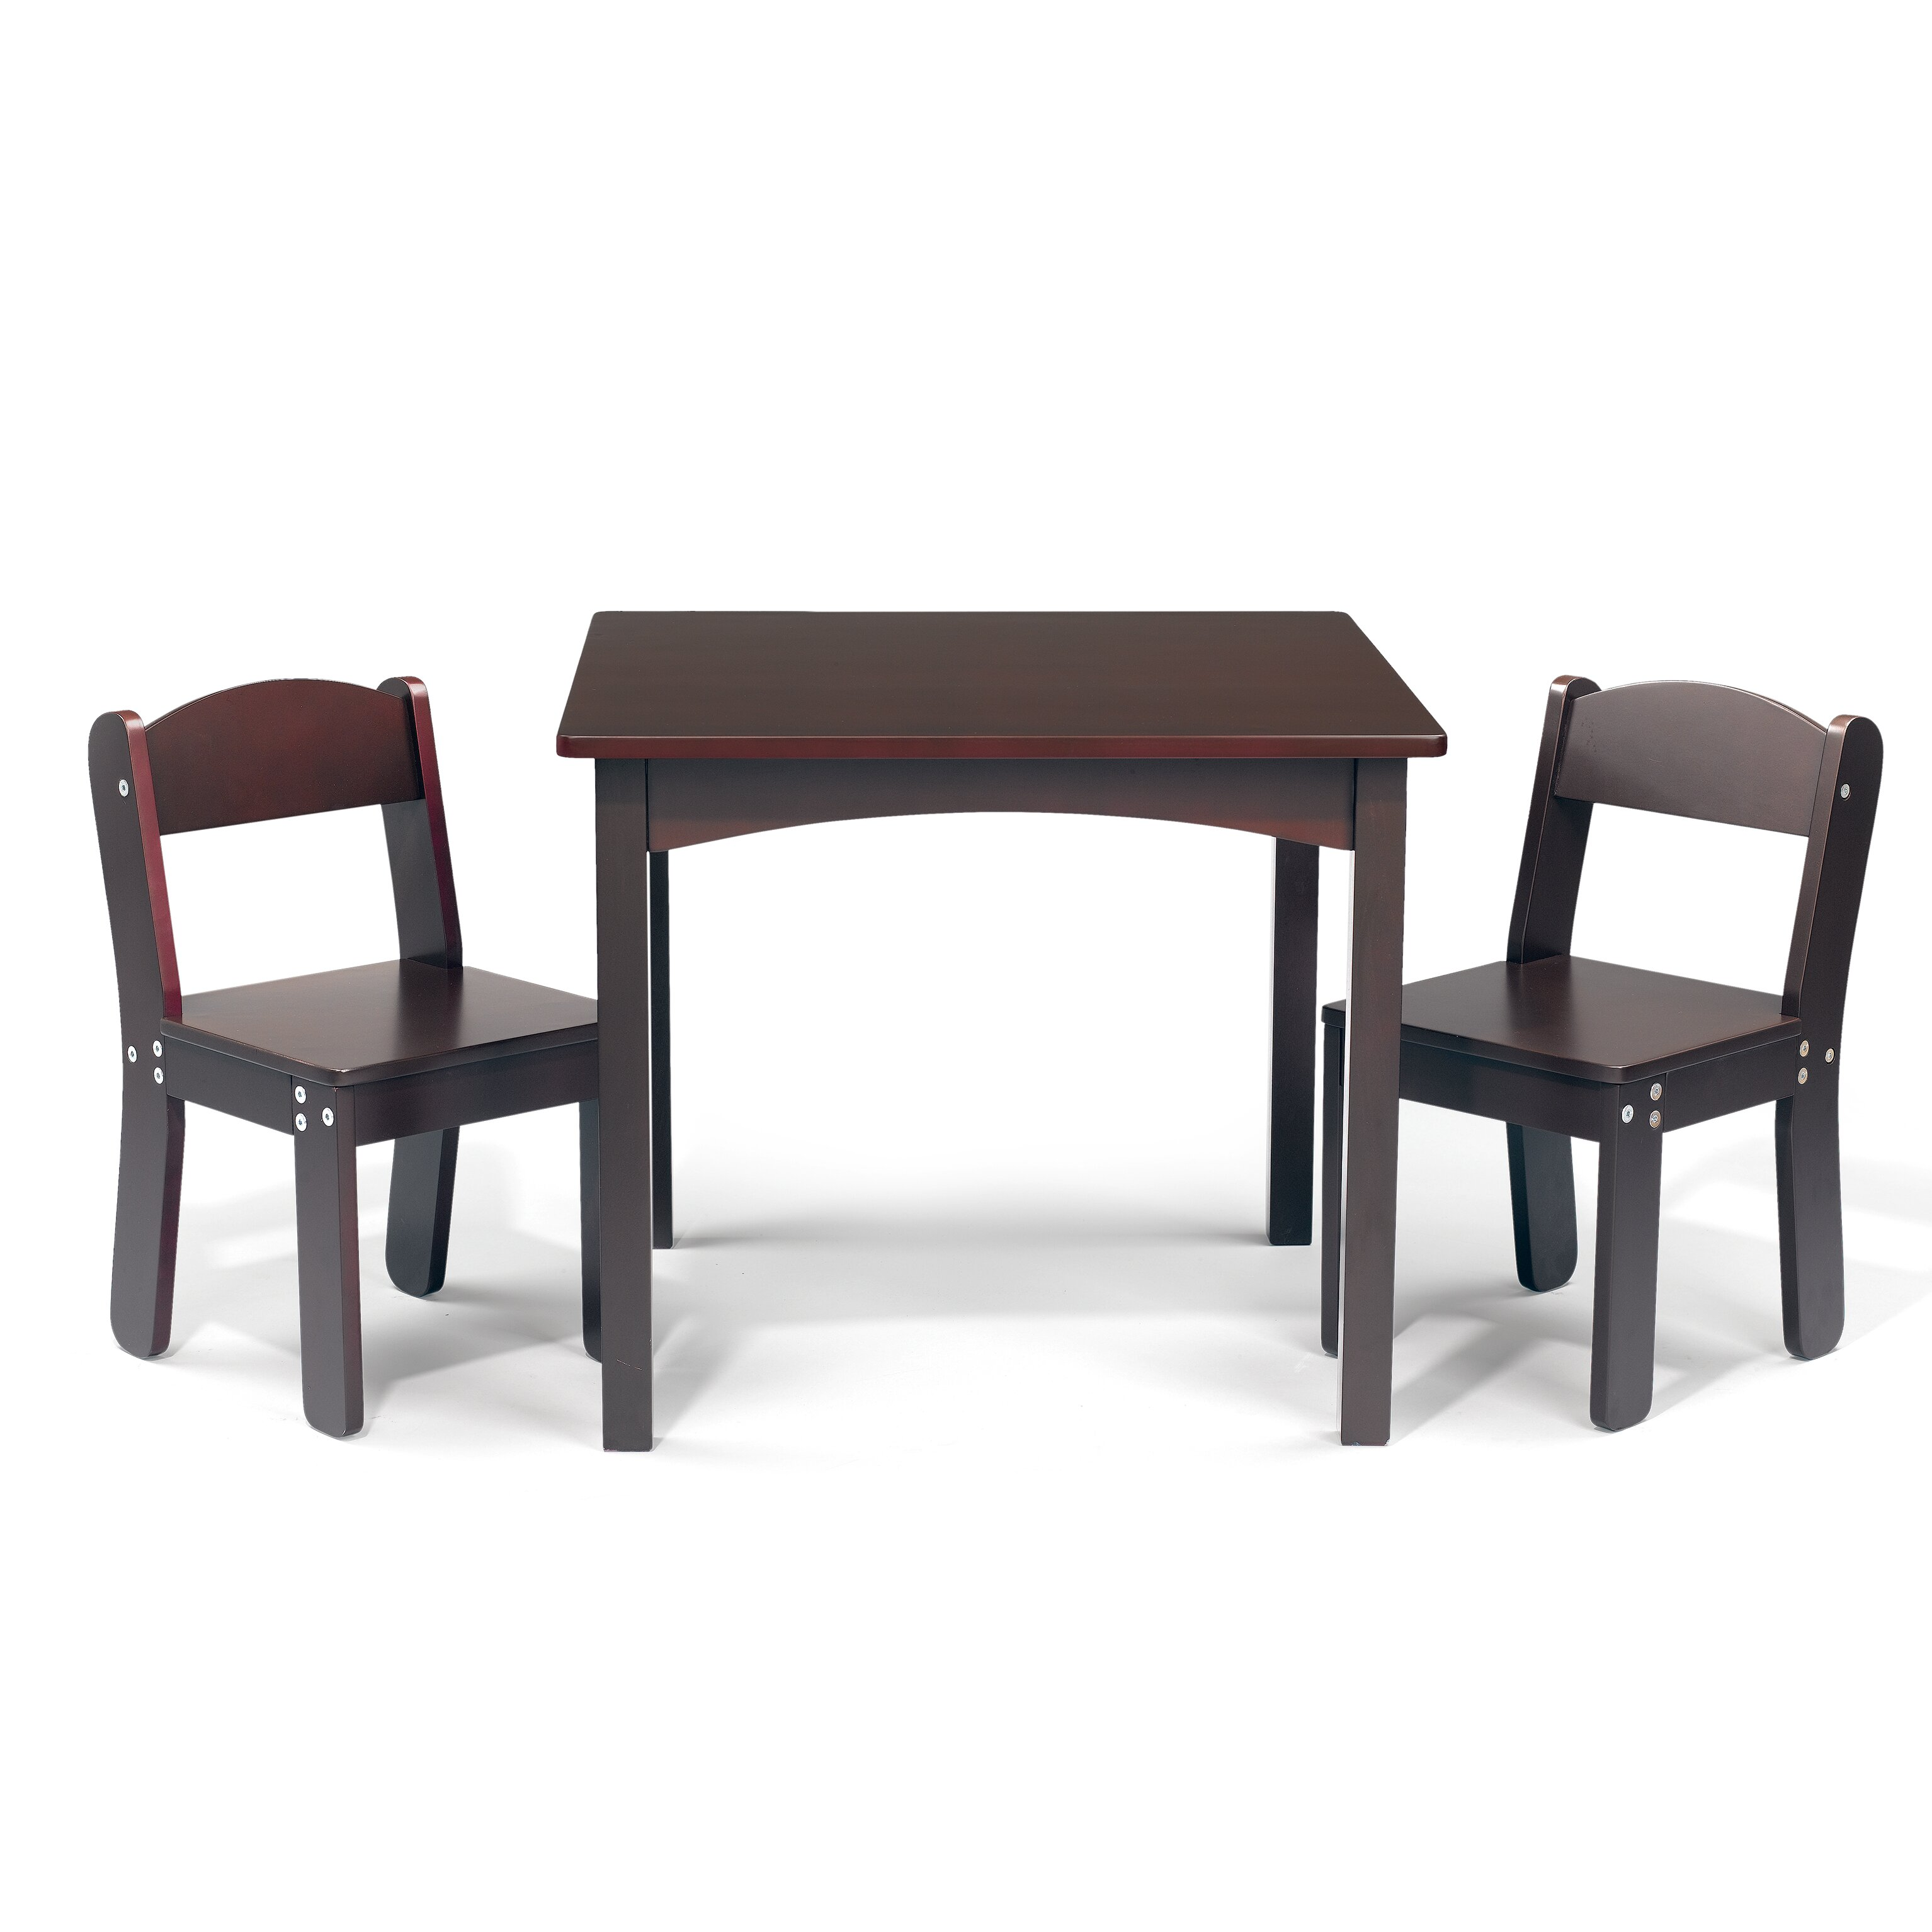 Sunnywood Wonkawoo Deluxe Children 39 S 3 Piece Table And